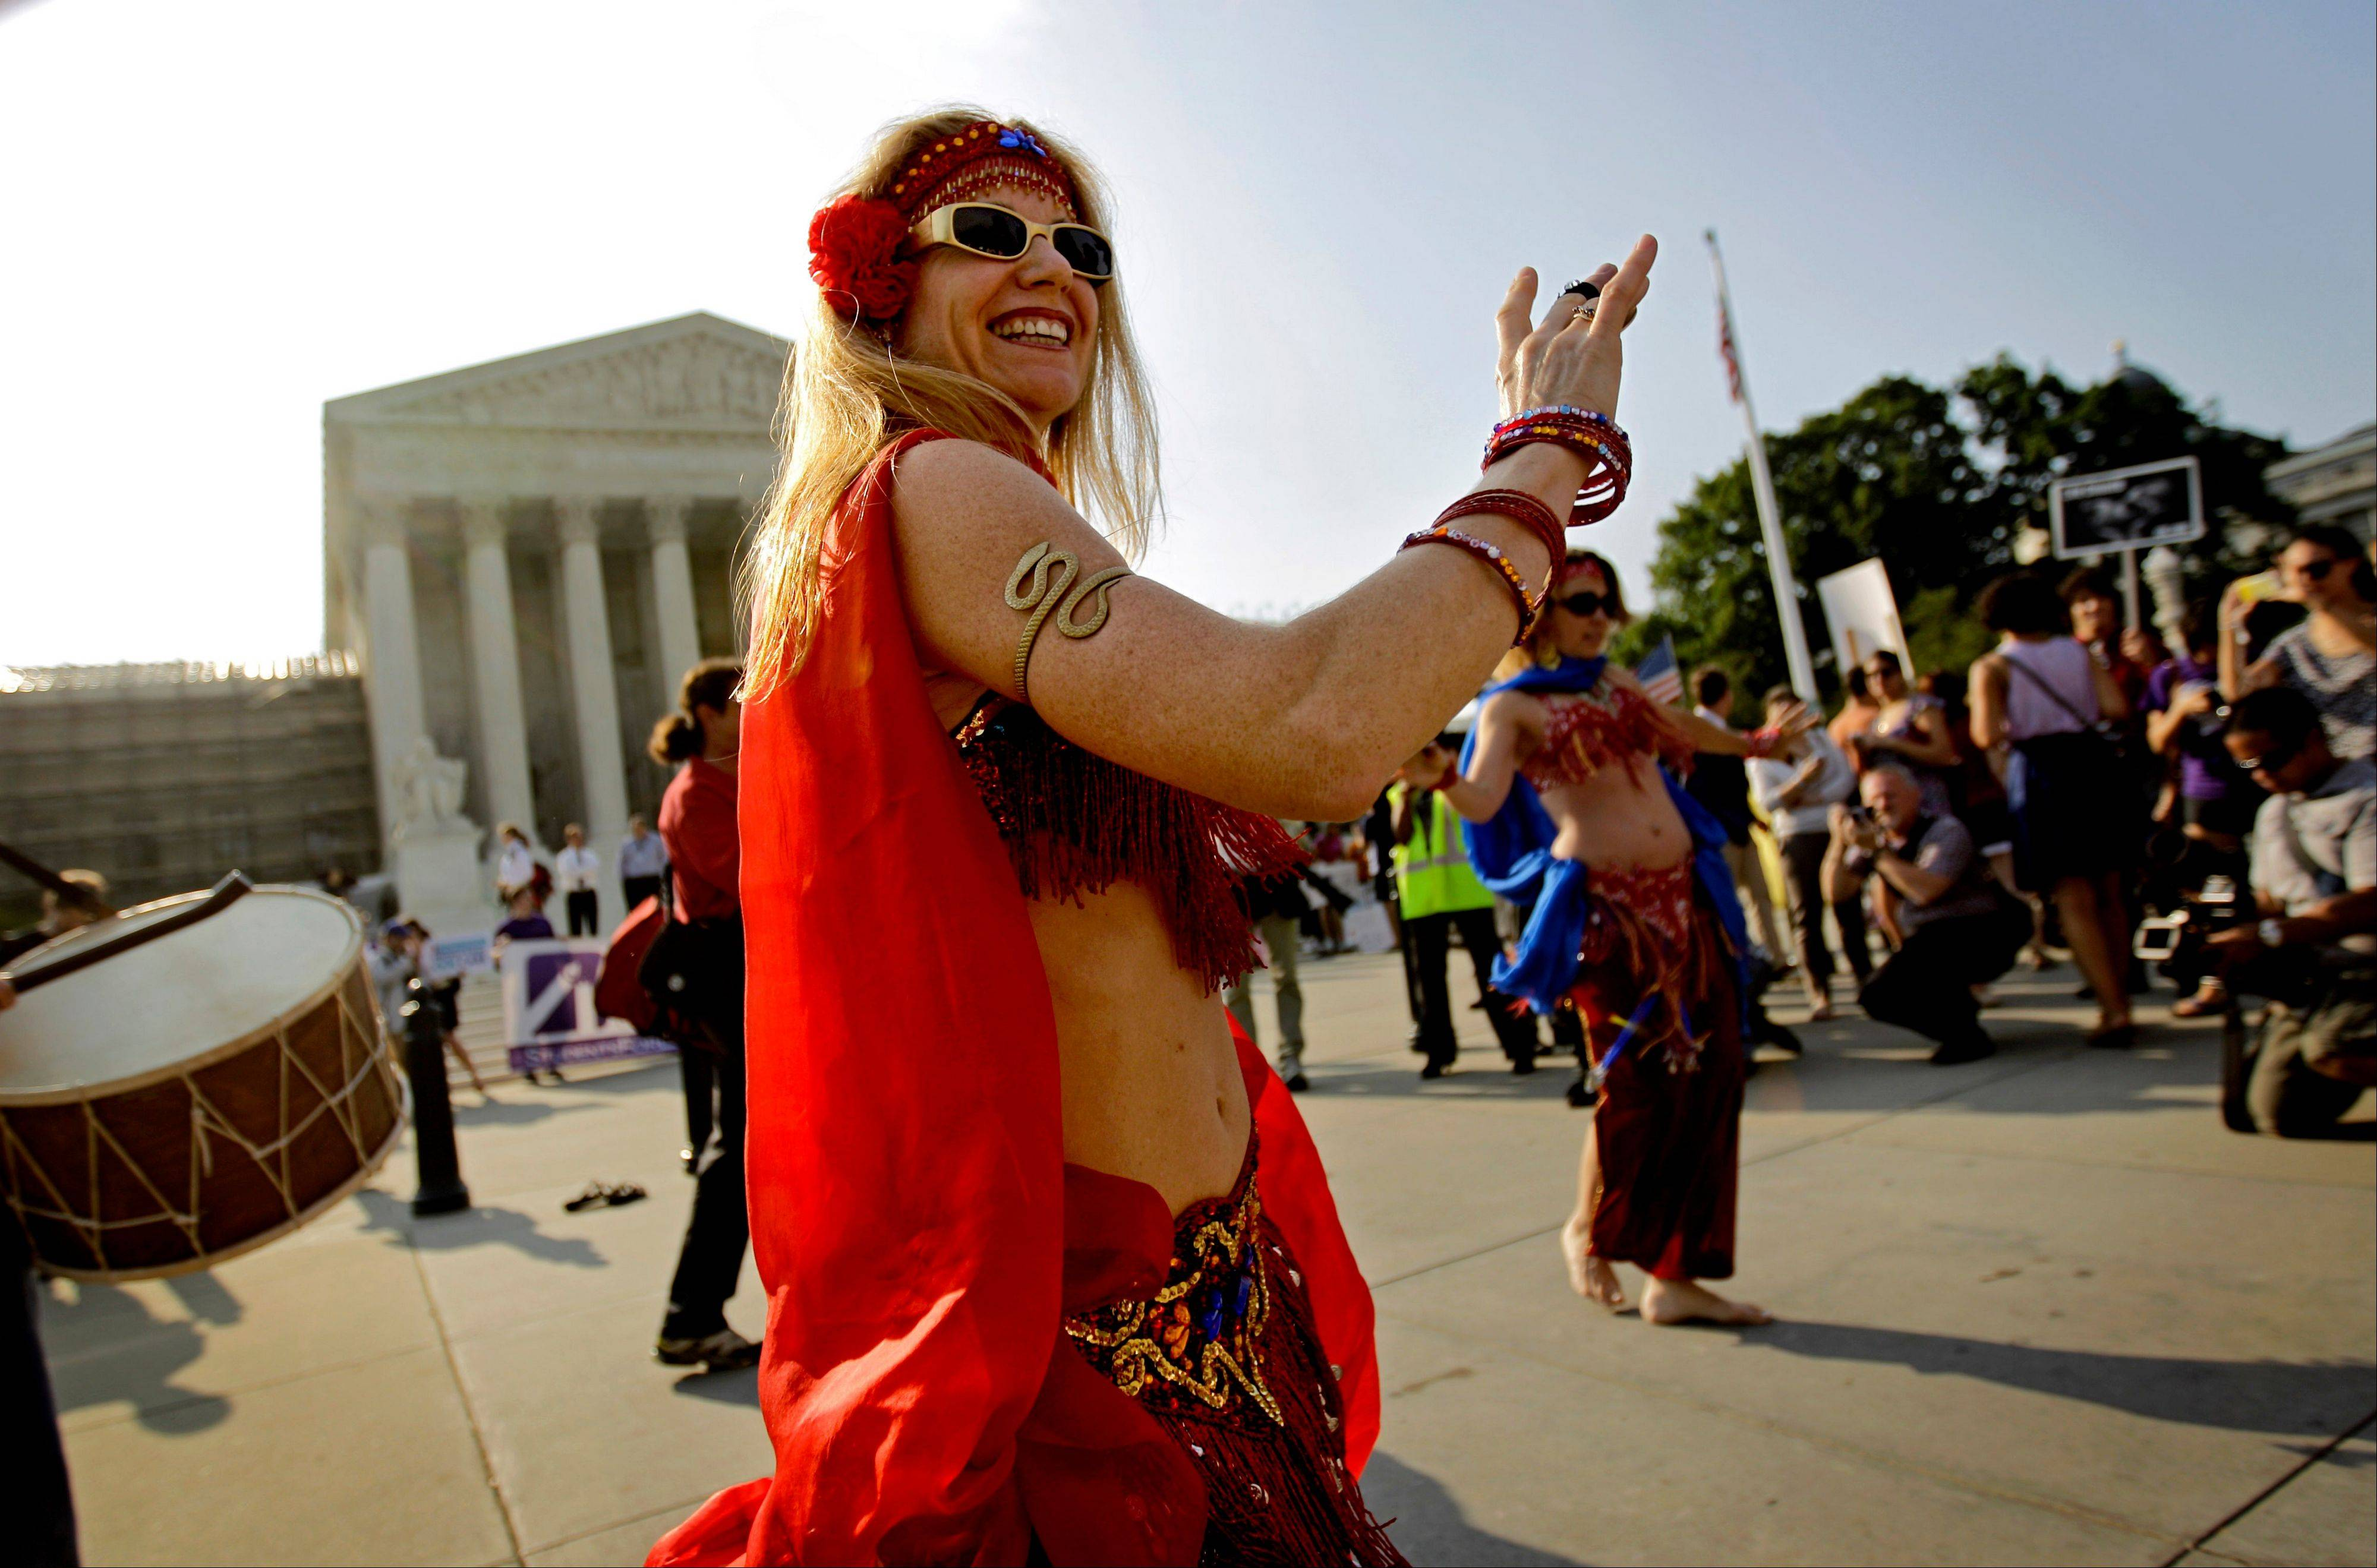 Belly dancer Jennifer Carpenter-Peak of Washington, dances outside the Supreme Court in Washington,Thursday, June 28, 2012, as the Supreme Court is expected to announce its ruling on President Barack Obama's health care law.